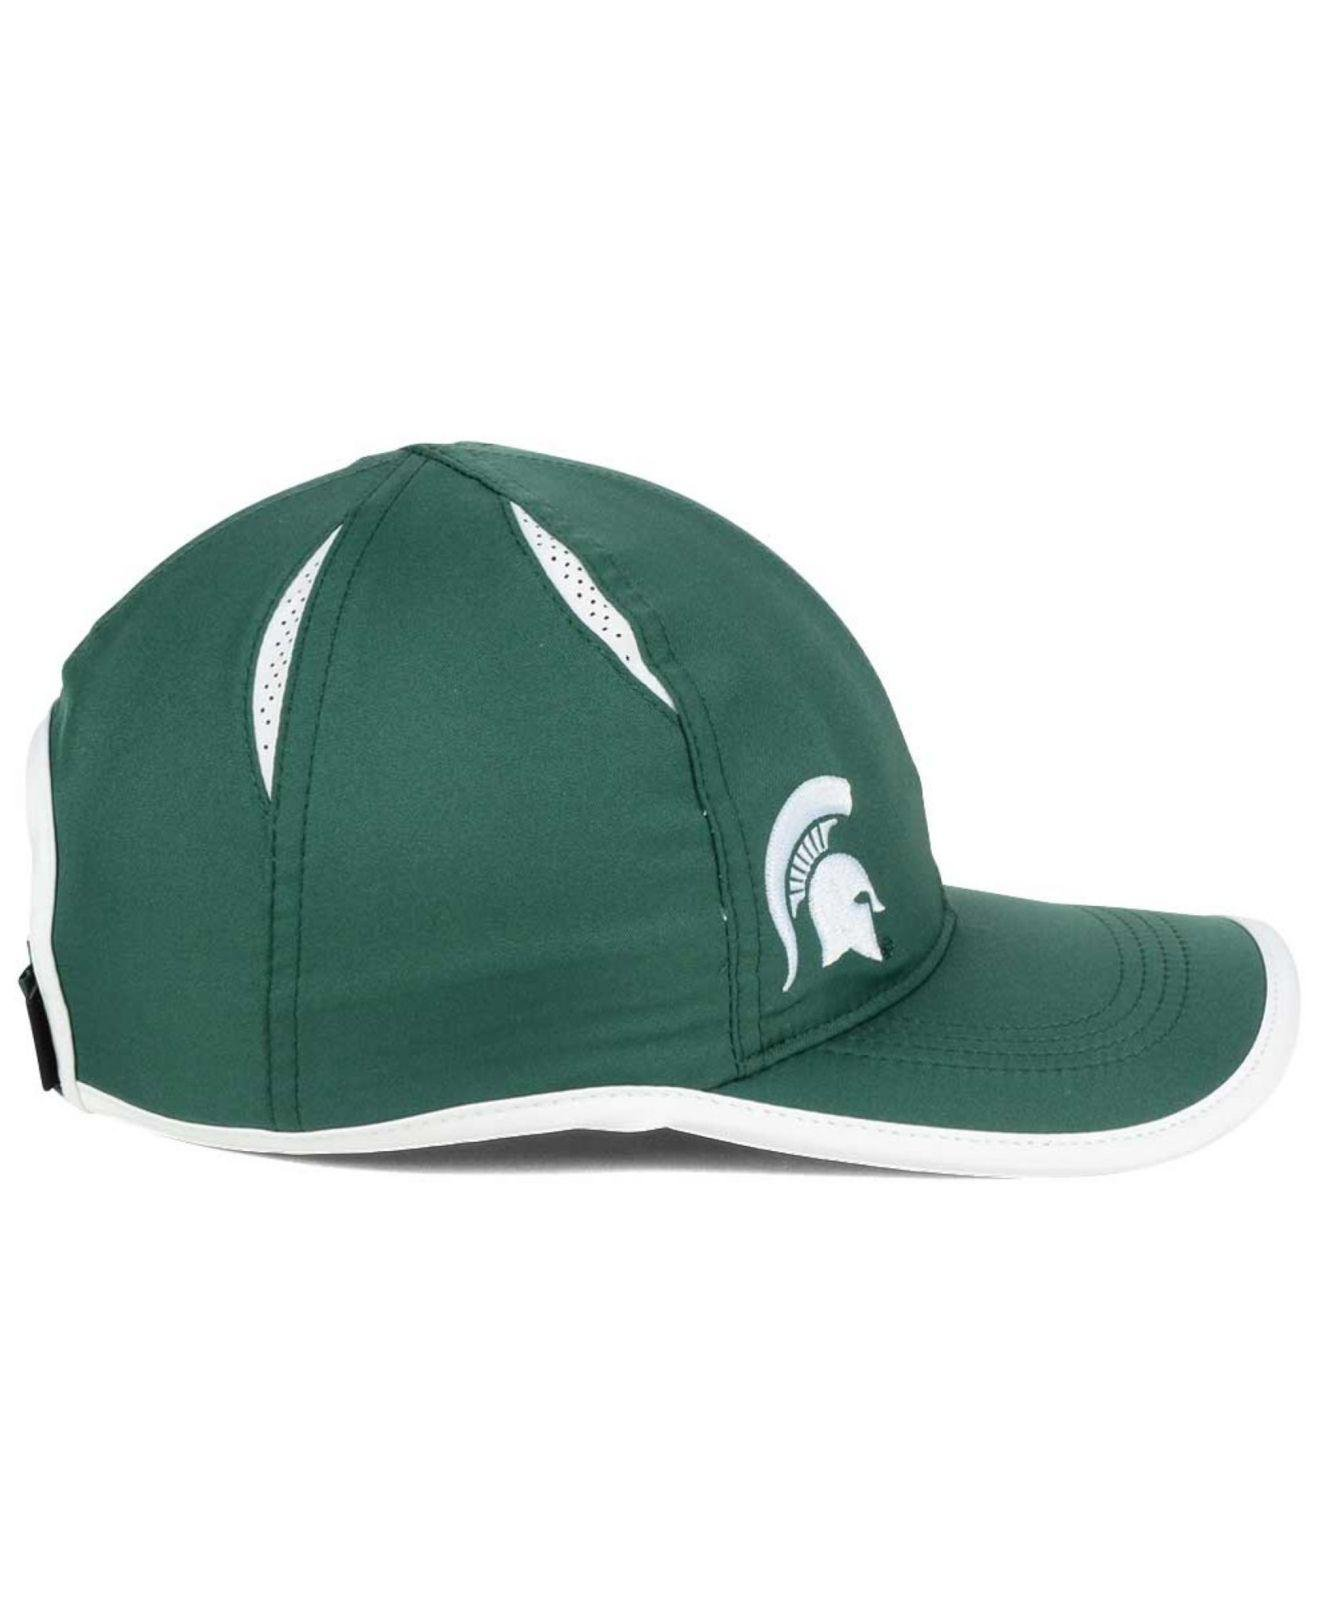 lowest price d04ea b6065 ... michigan state spartans echo cuffed knit hat 6be6a c942c  italy lyst  nike big swoosh adjustable cap in green for men 7f08b 28b17